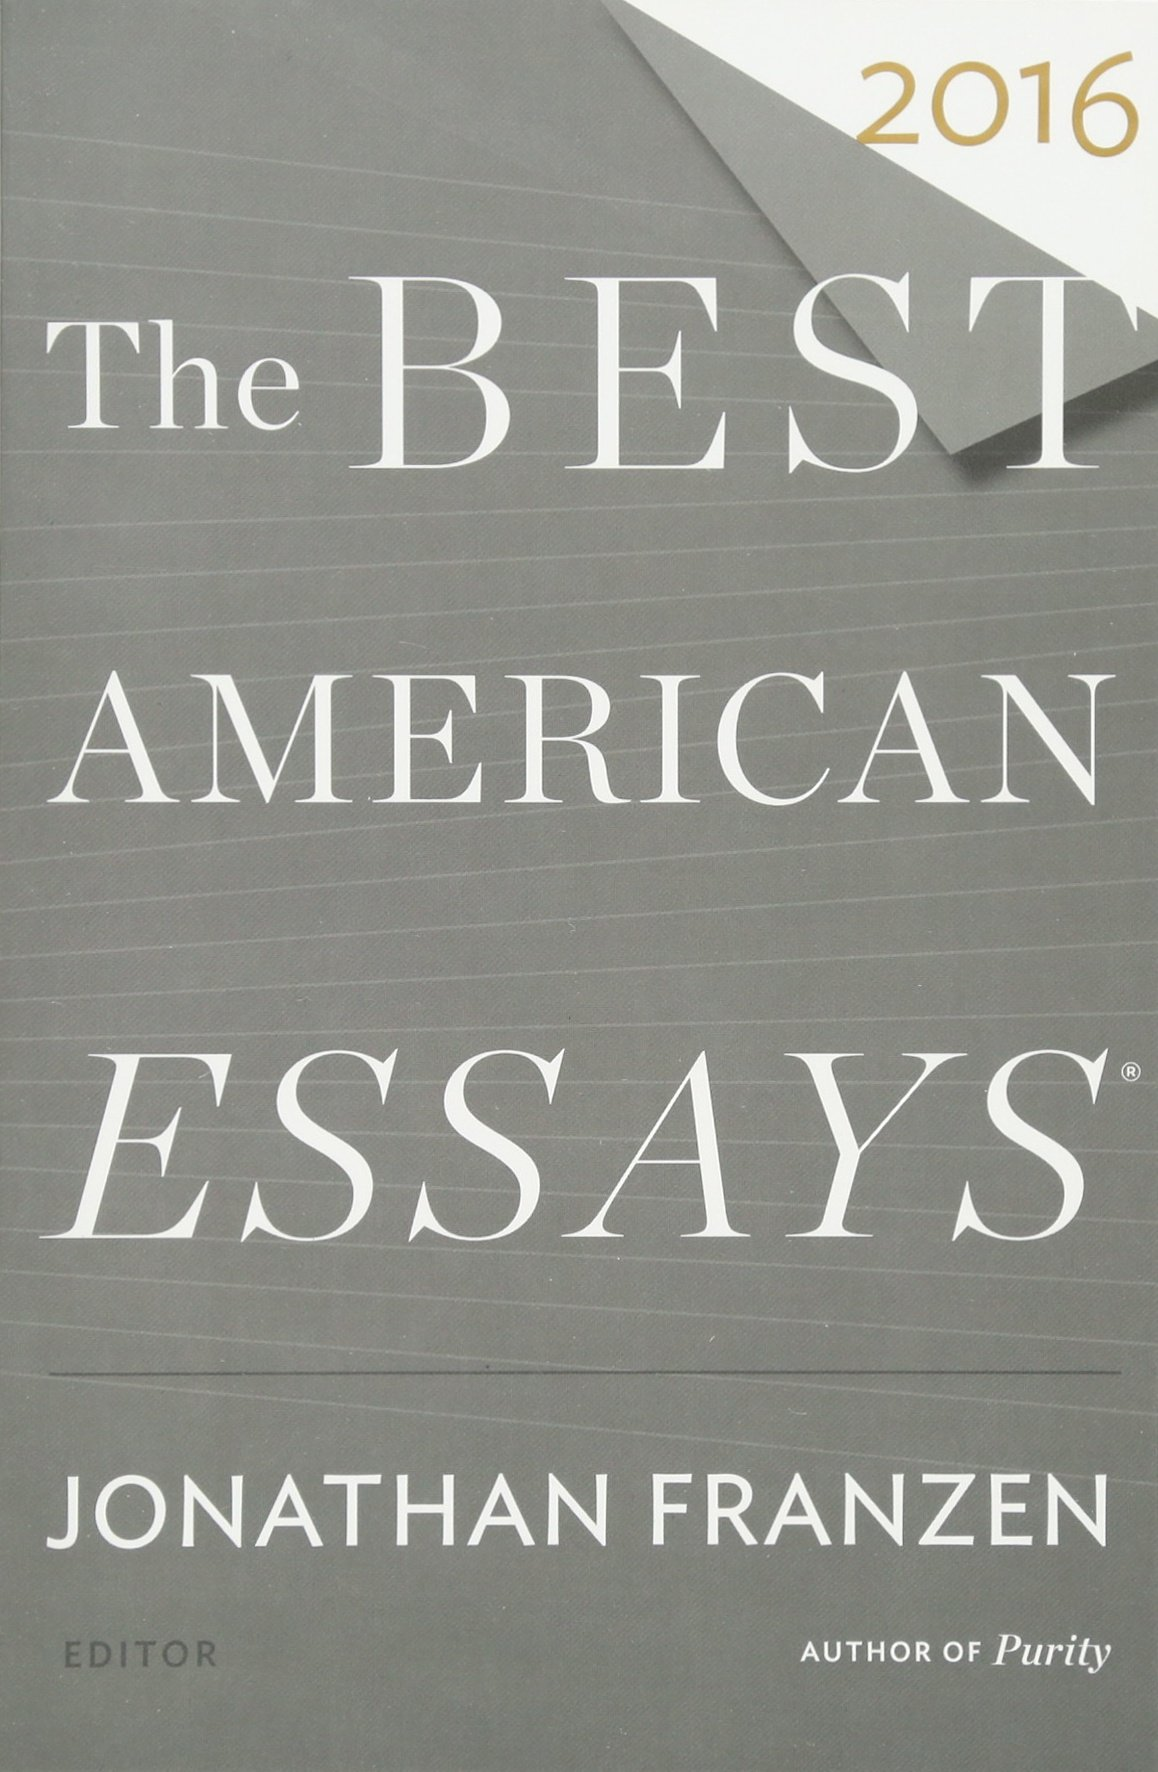 005 Best American Essays 71a6bhsgsdl Essay Striking 2017 Table Of Contents The Century Pdf Full